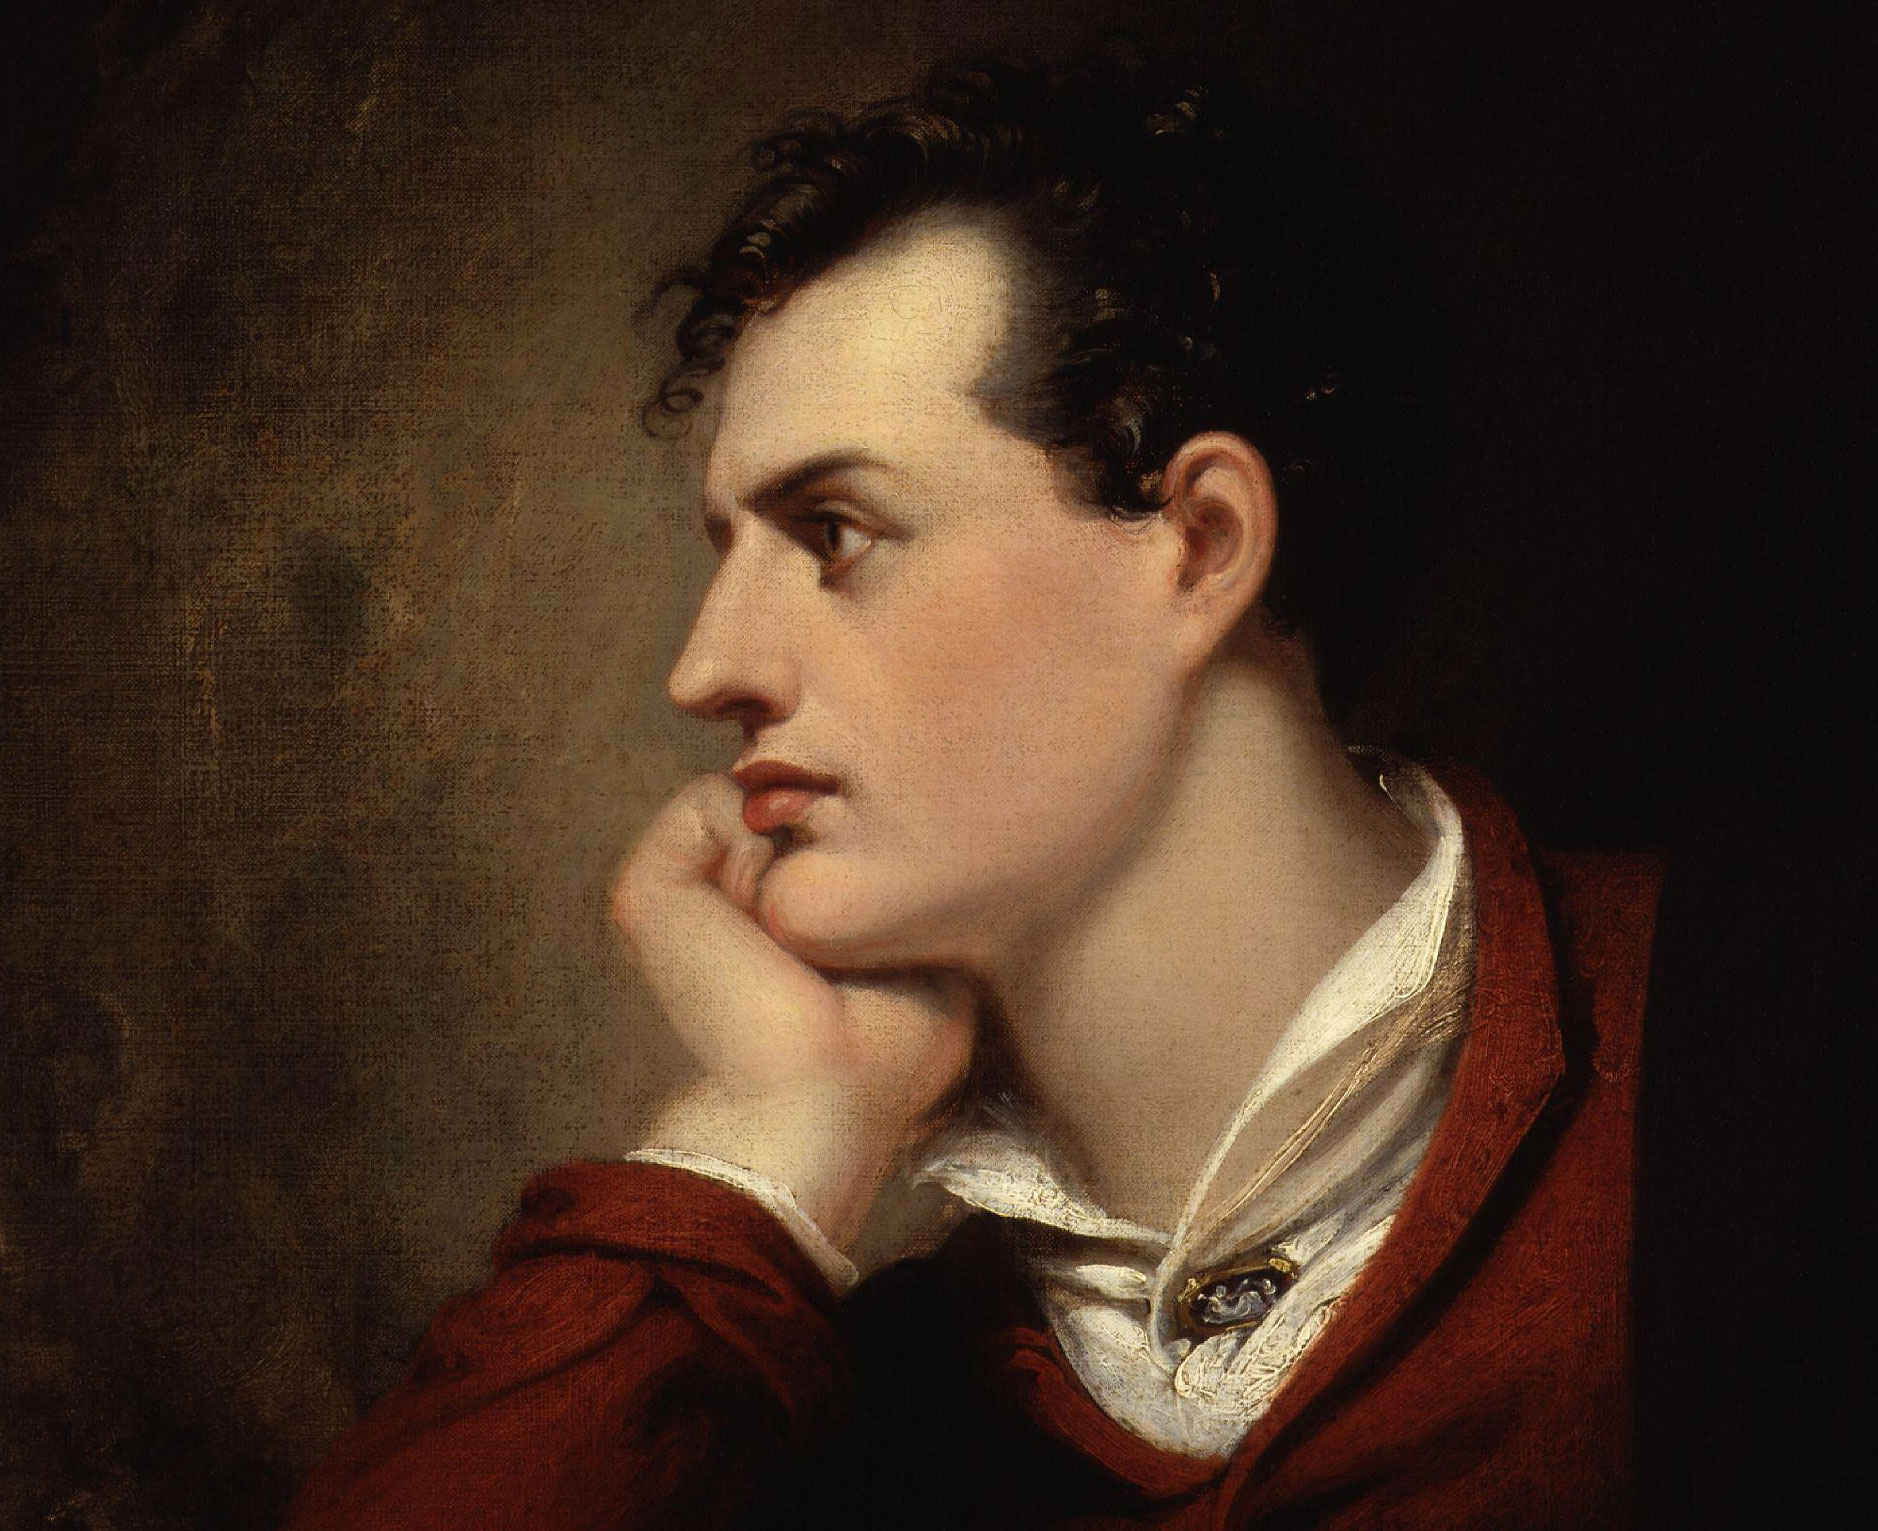 Lord (George Gordon) Byron's picture